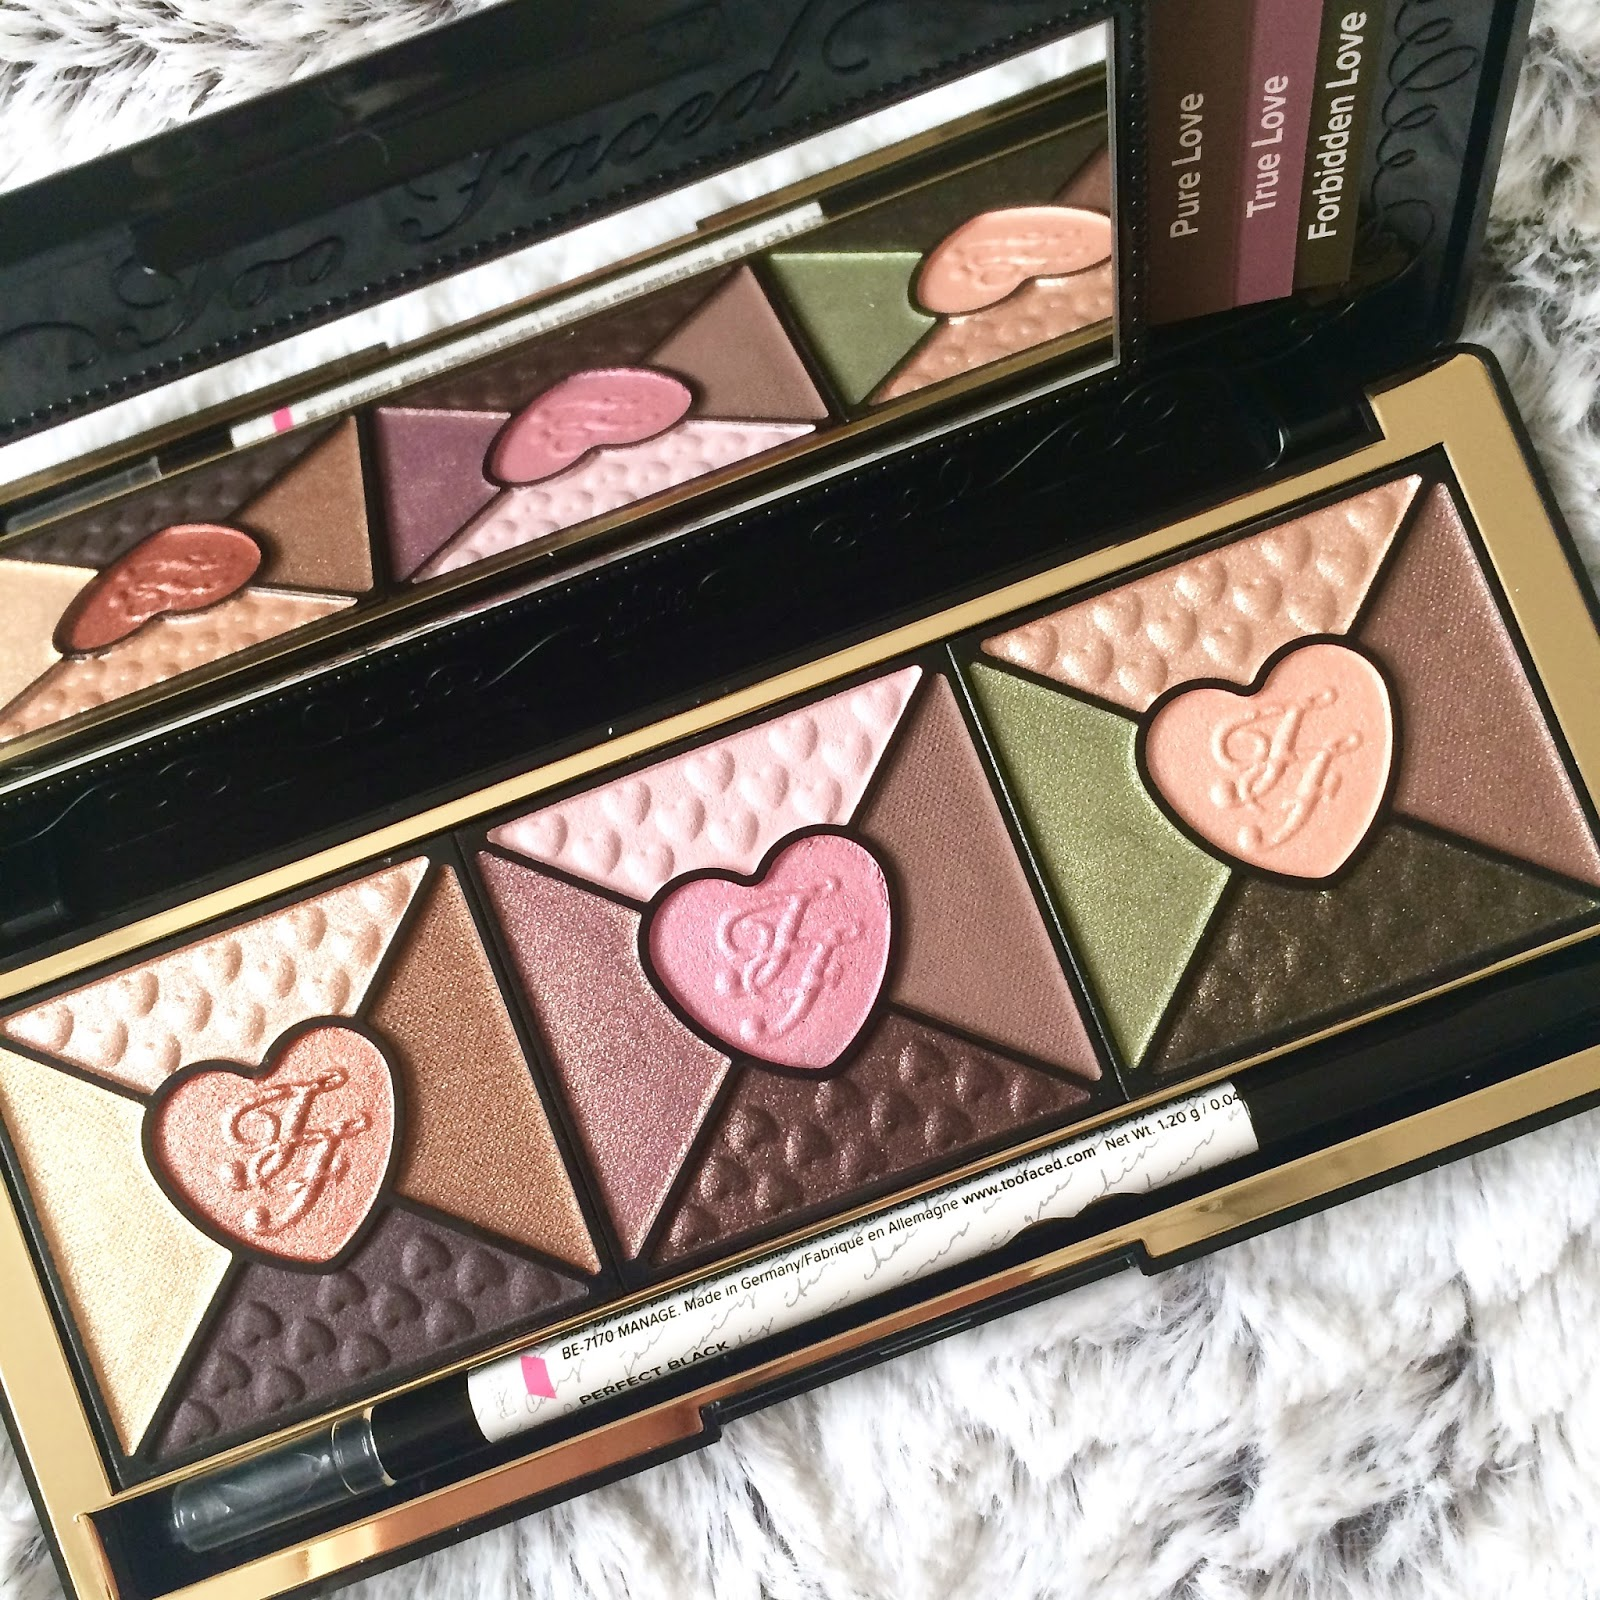 The Too Faced Love Palette